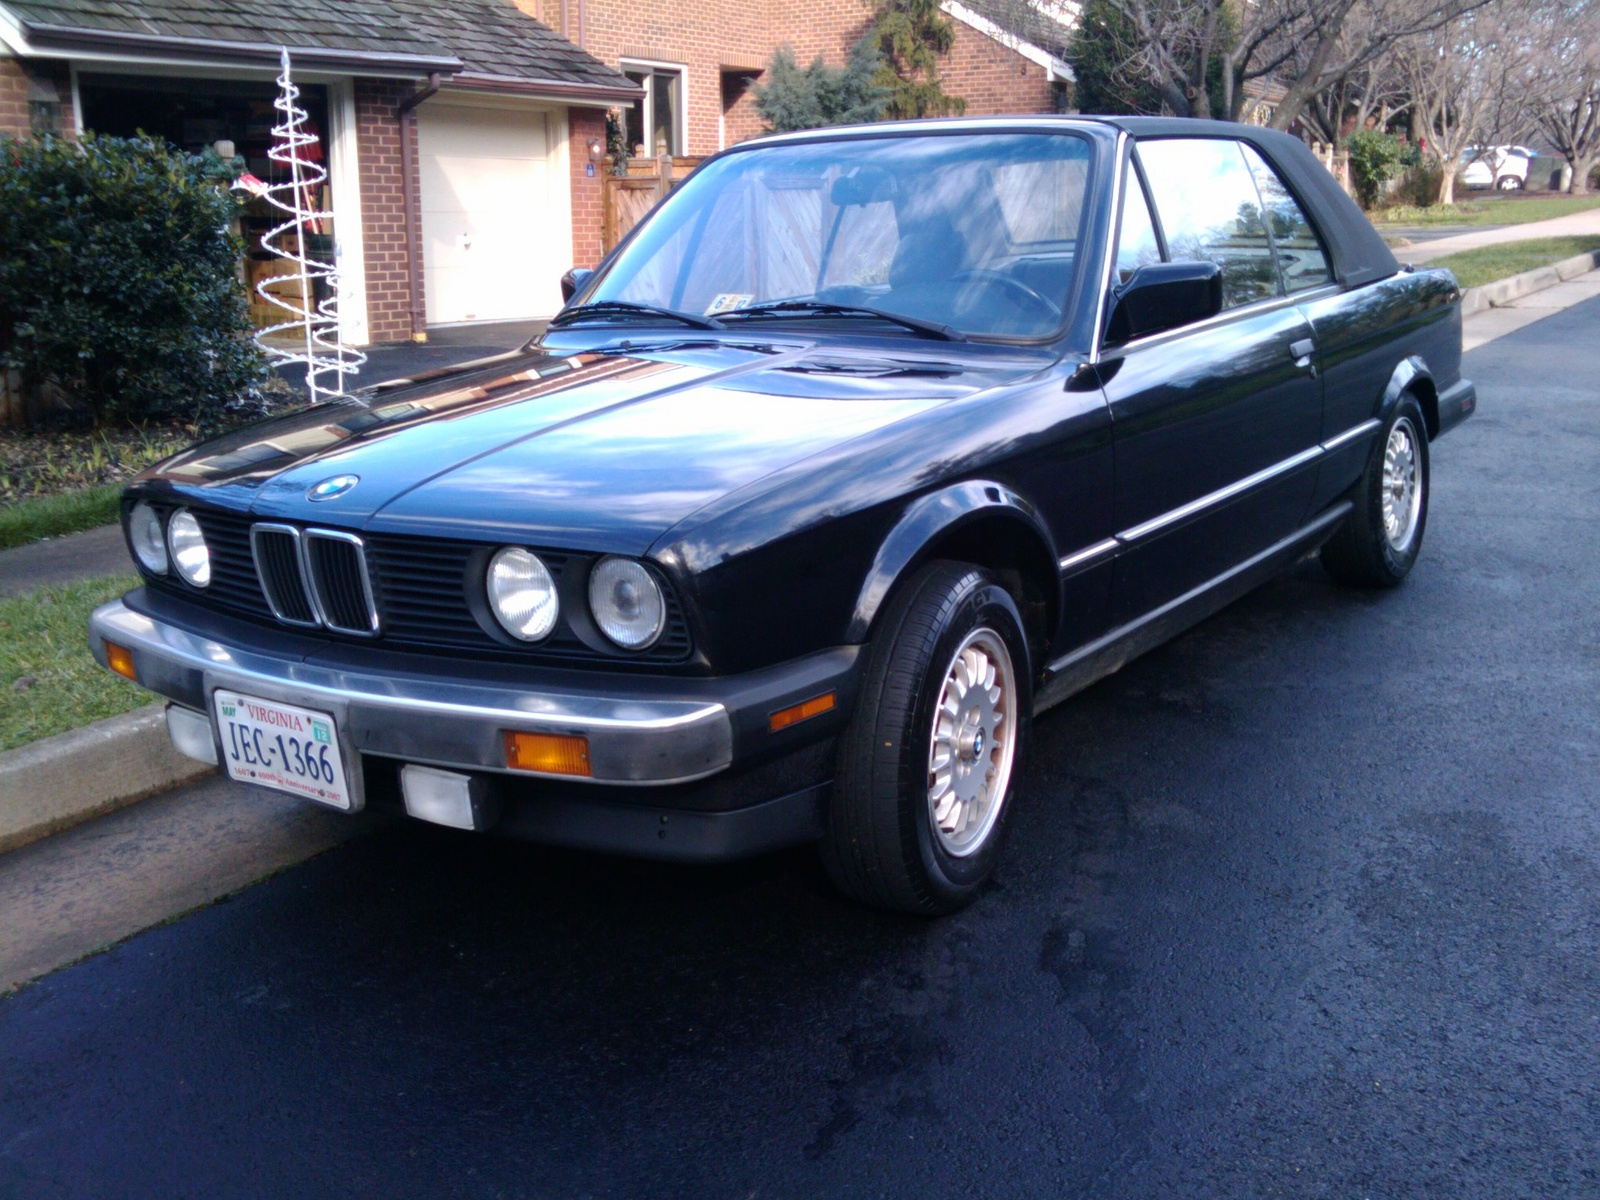 BMW 3 series 325ix 1989 photo - 7